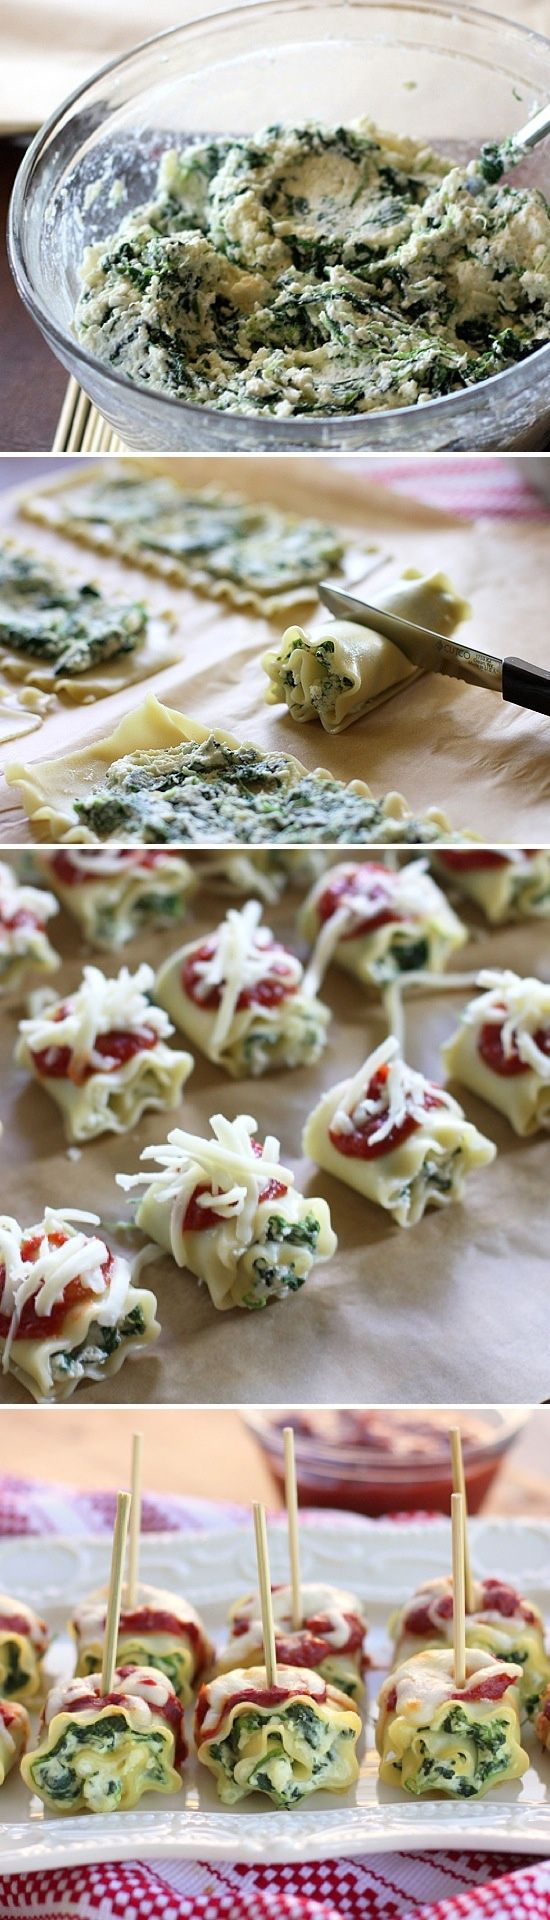 Mini Spinach Lasagna Roll-Ups: Ricotta, salt, pepper, spinach, Parmesan, and cream or bechamel sauce.